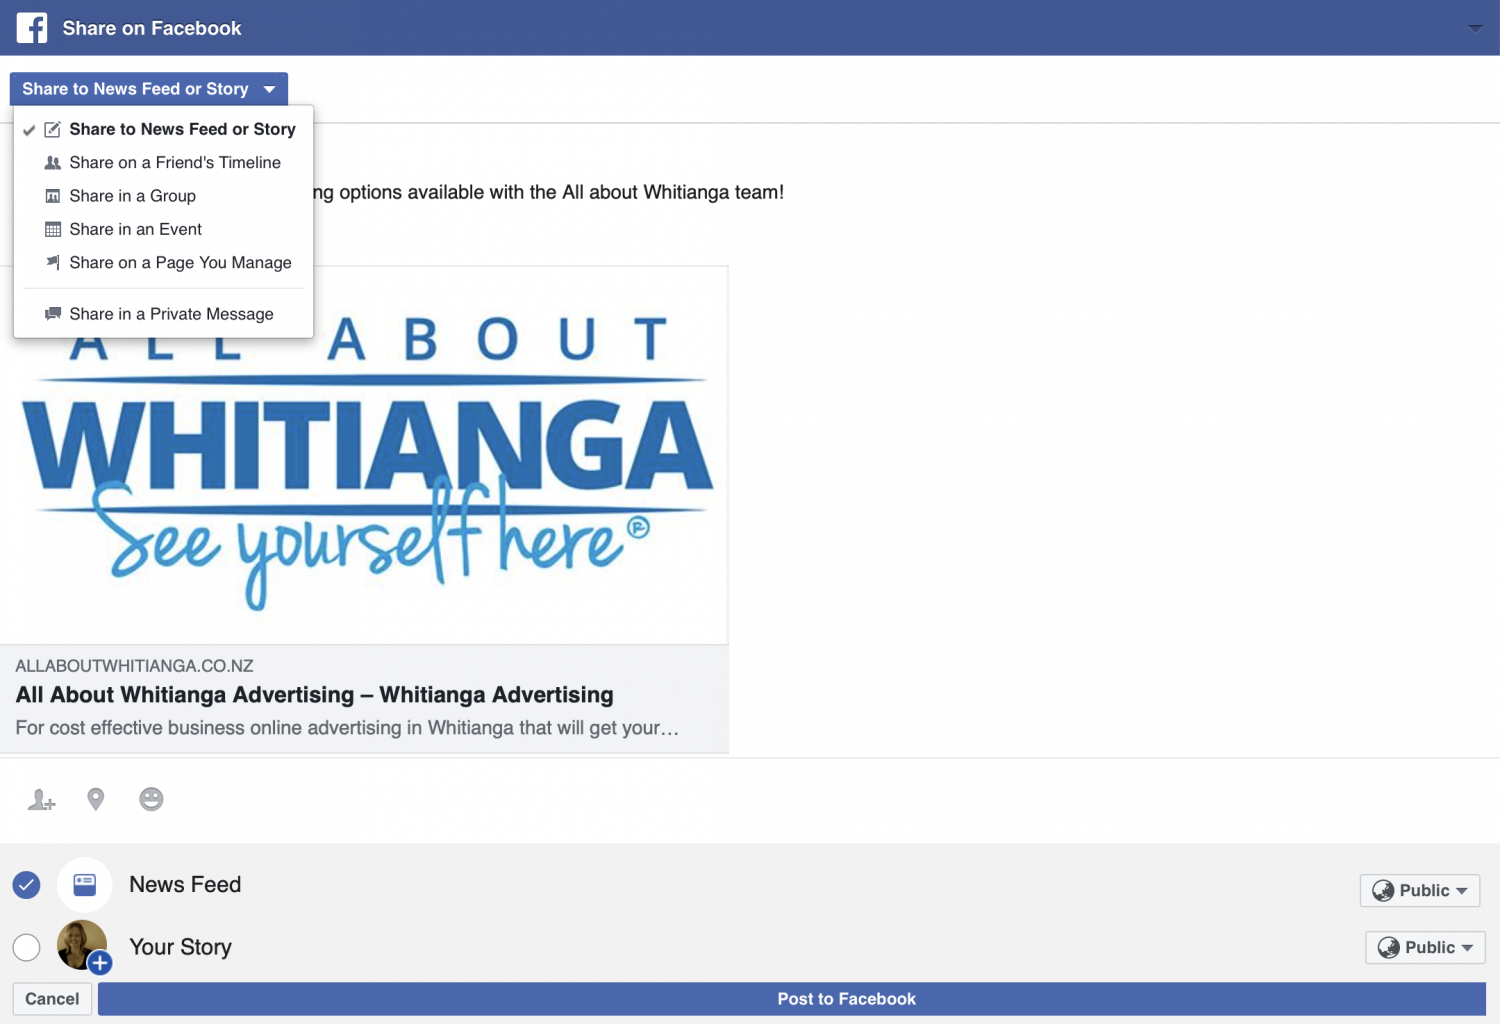 Screenshot of the All About Whitianga website